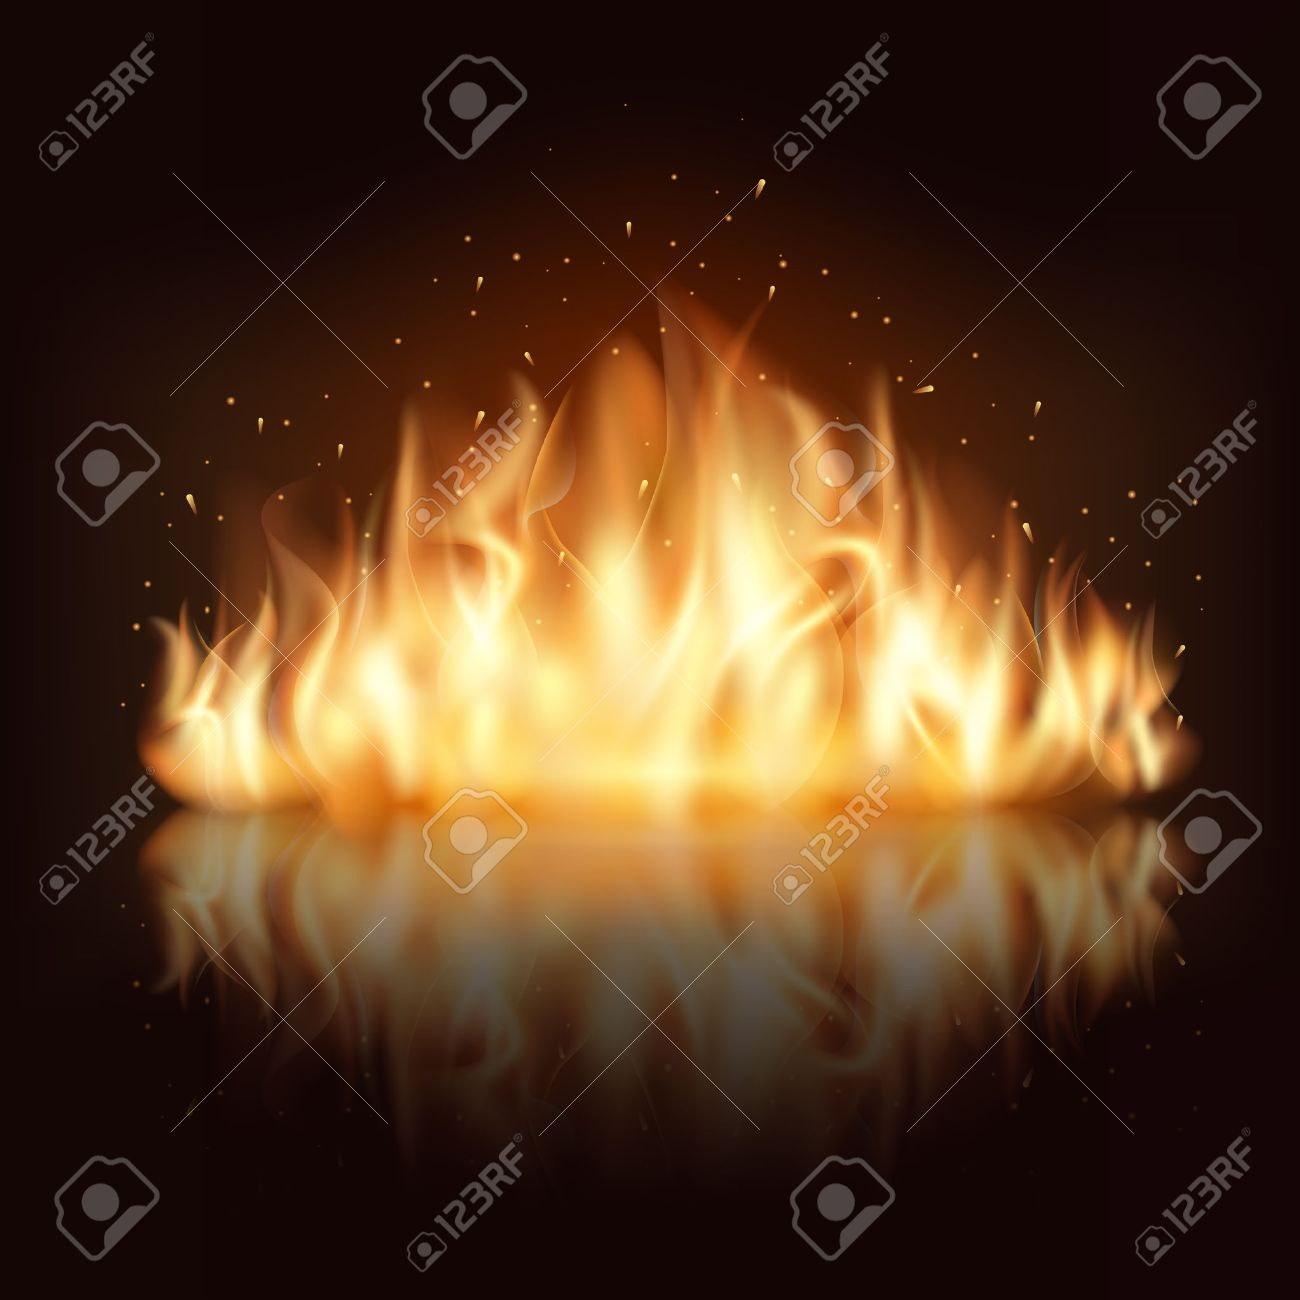 Burning fire flame. Burn and hot, warm and heat, energy flammable, flaming vector illustration - 51644100